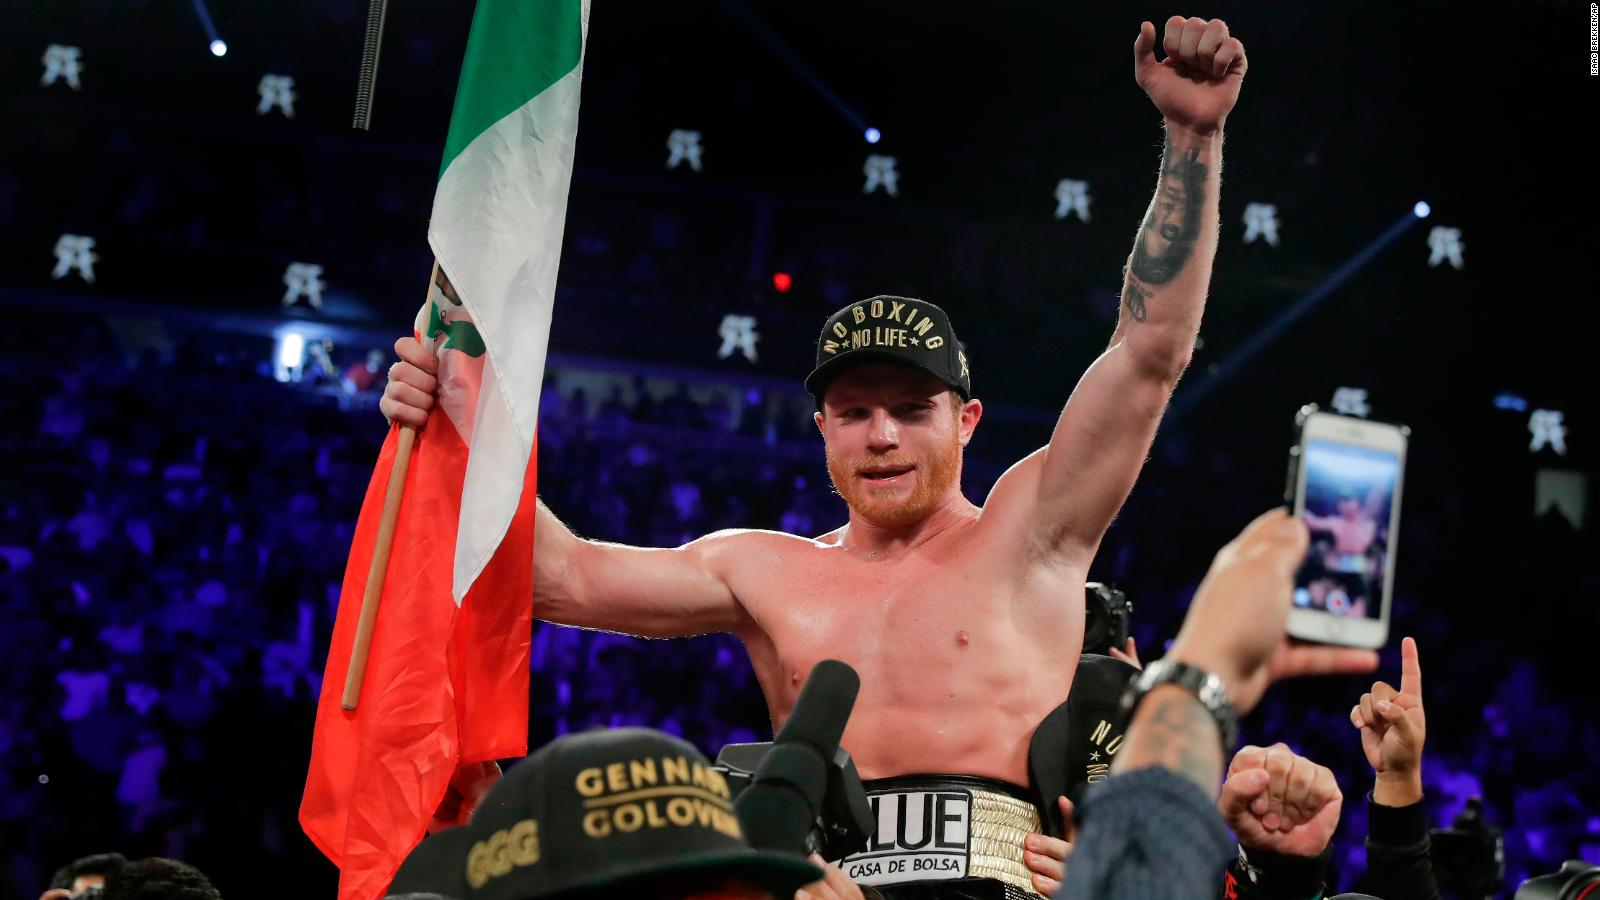 Canelo Alvarez Defeats Ggg In Middleweight Match Cnn